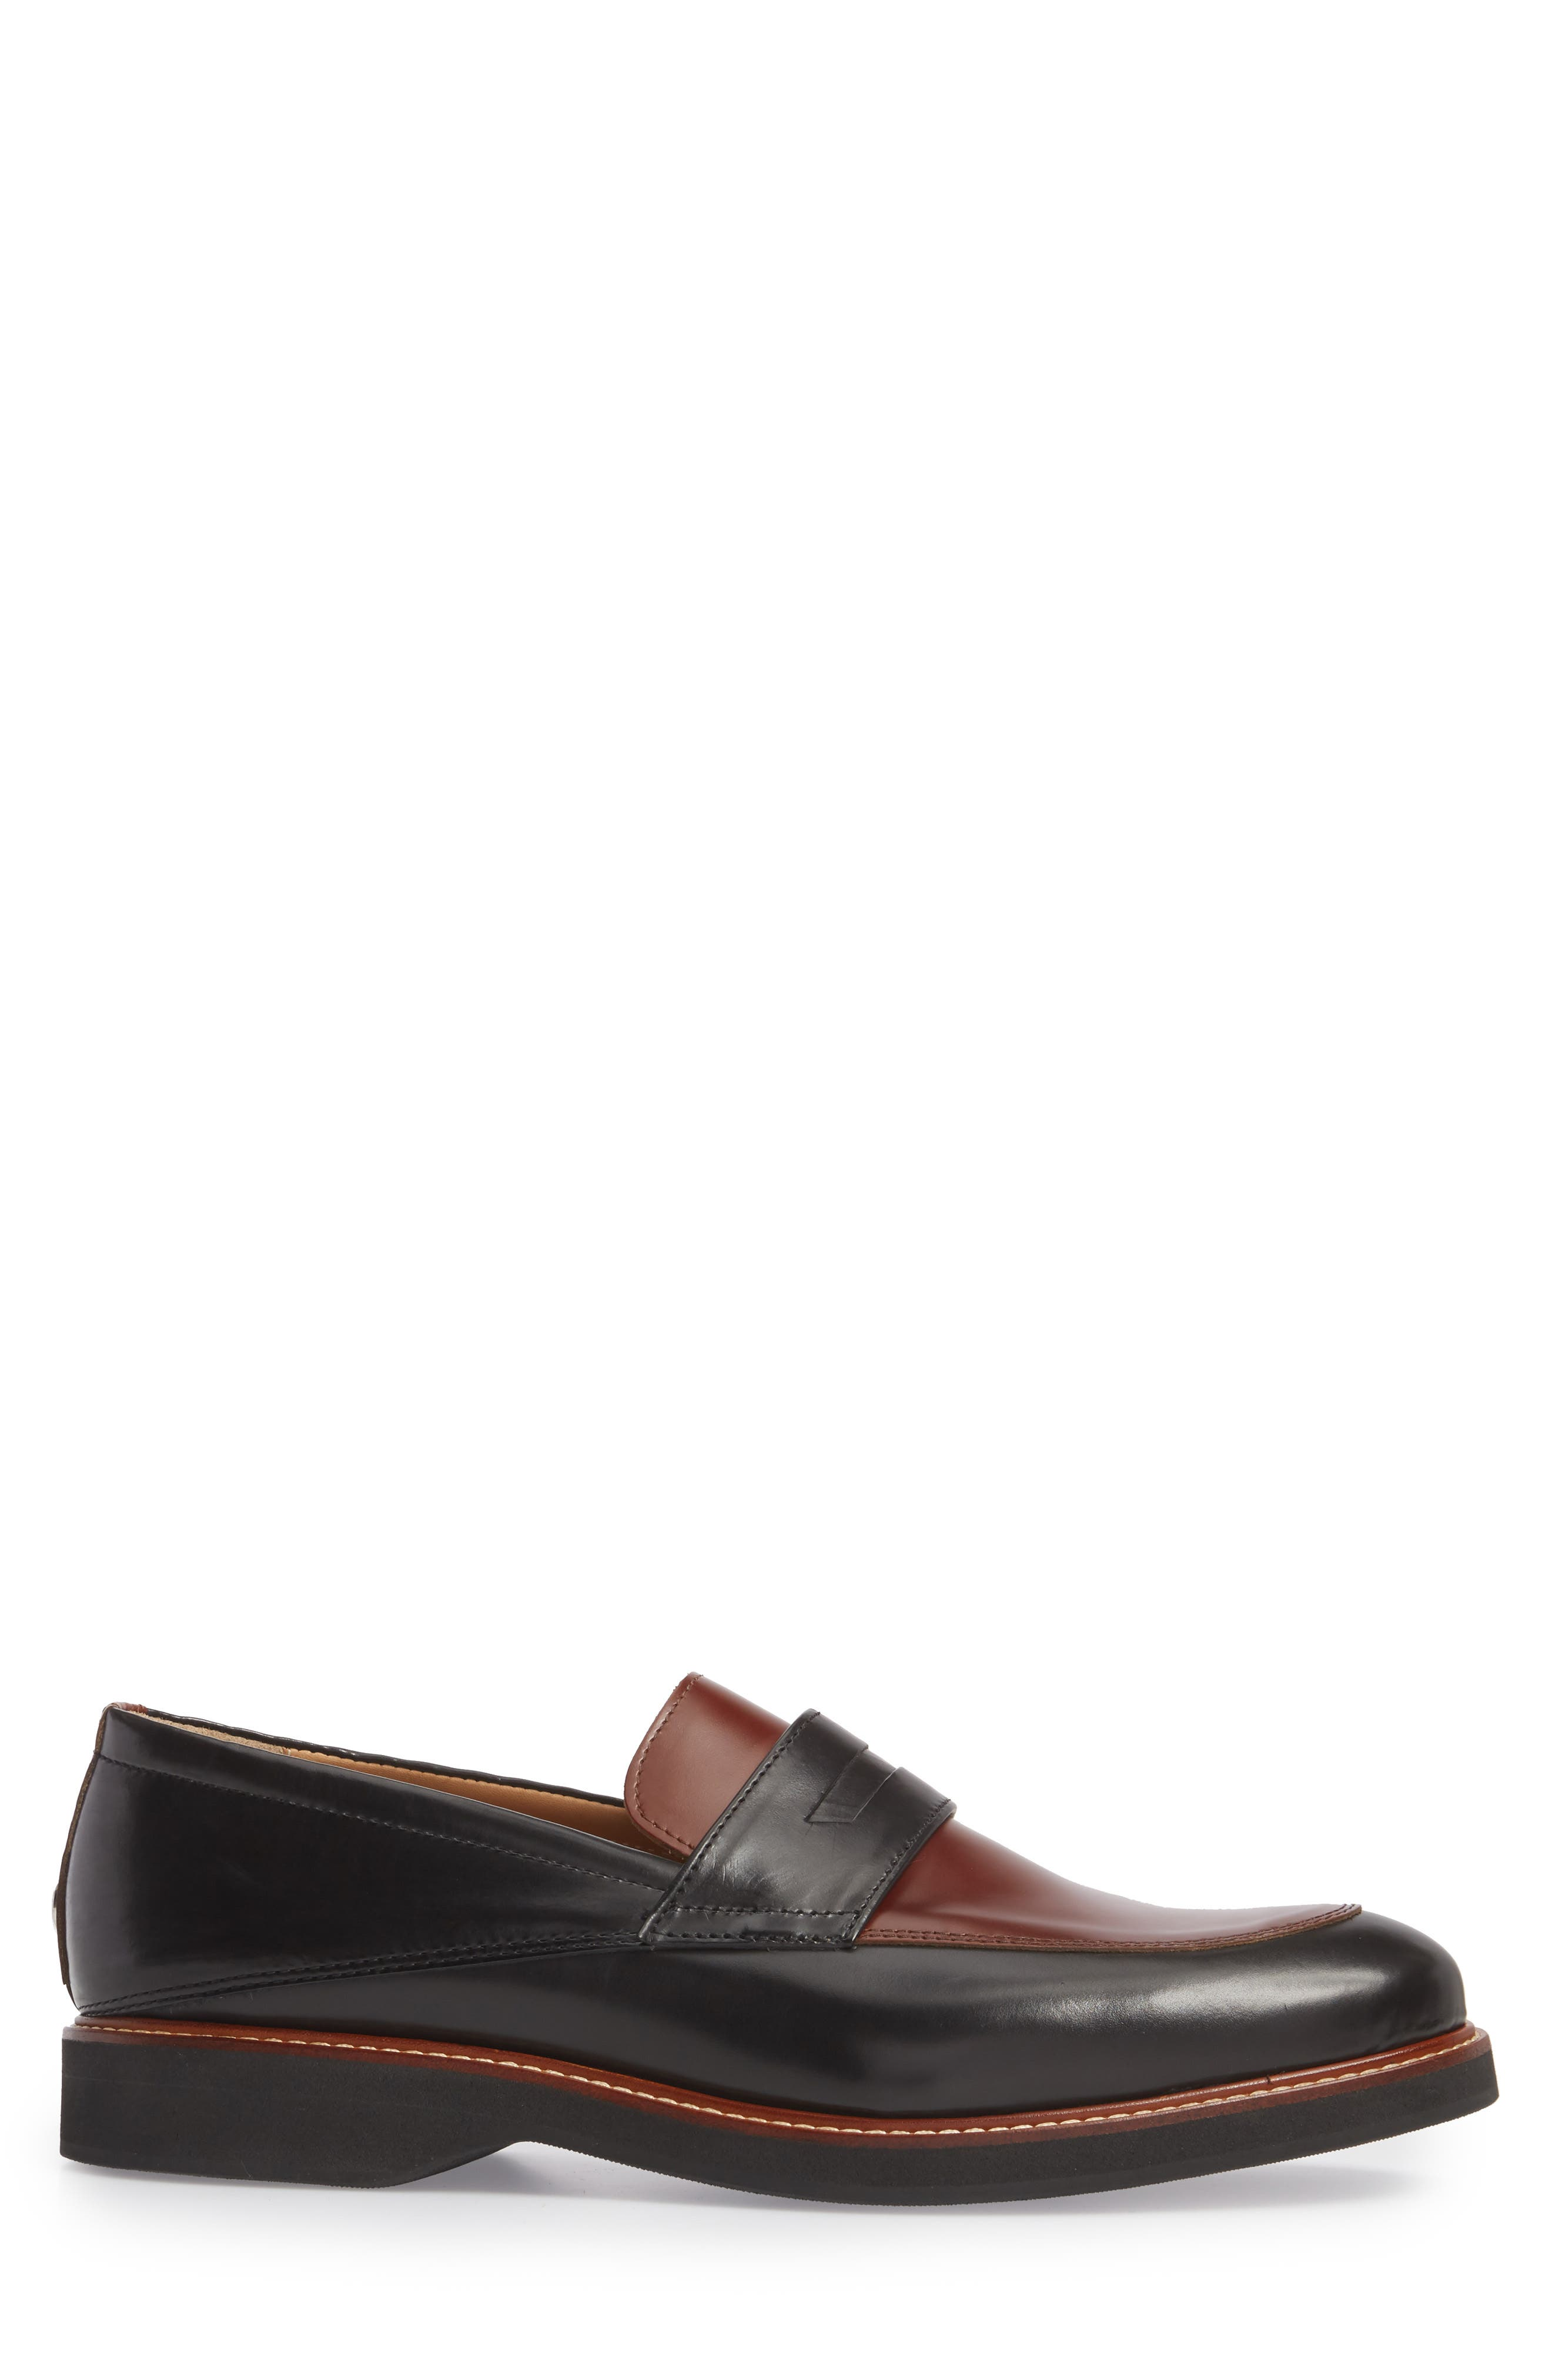 Marcus Penny Loafer,                             Alternate thumbnail 3, color,                             Black/ Cognac